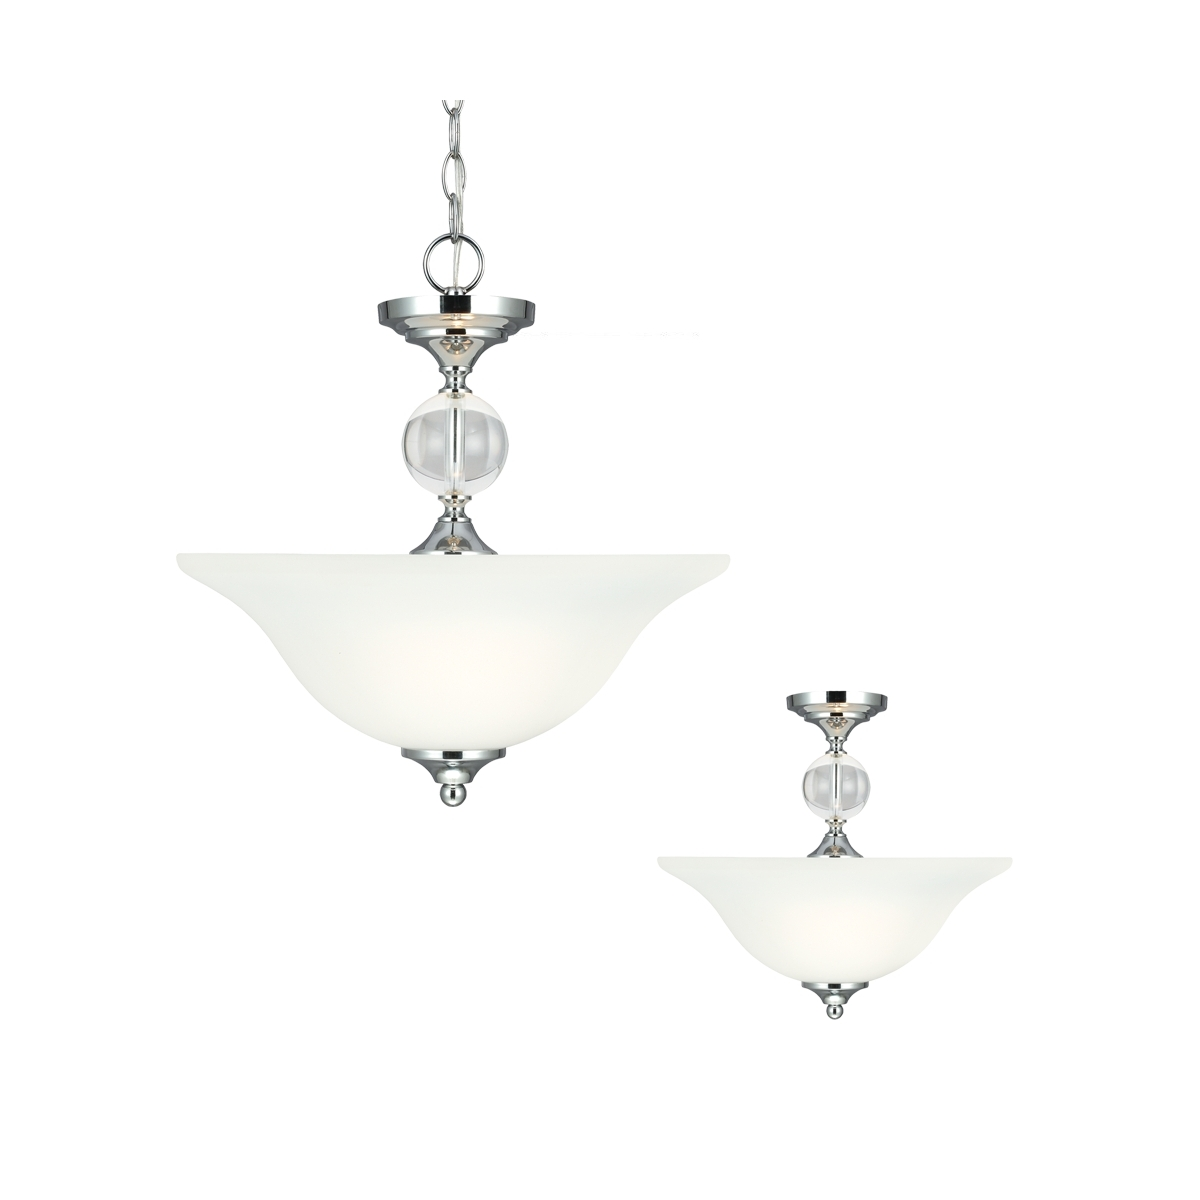 Sea Gull Englehorn 2 Light Semi-Flush Convertible Pendant in Chrome / Optic Crystal 7713402BLE-05